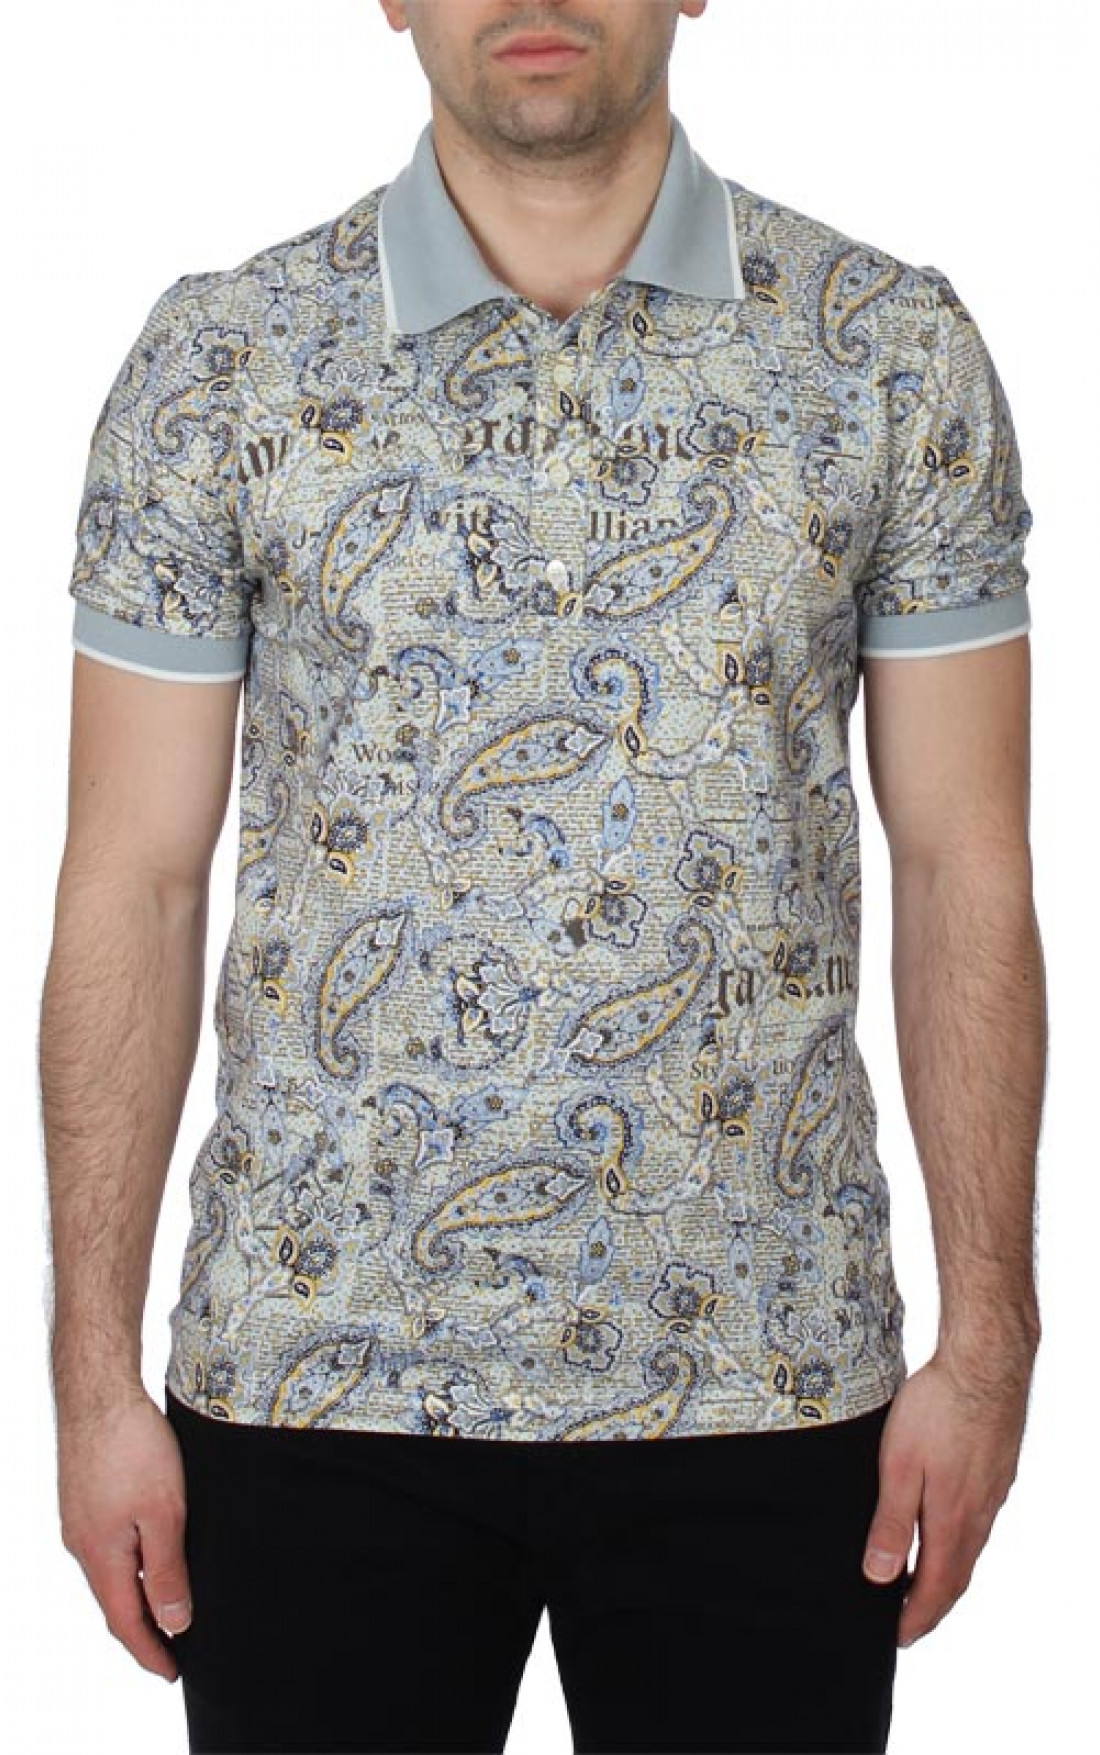 printed polo shirts uk Shop Clothing & Shoes Online